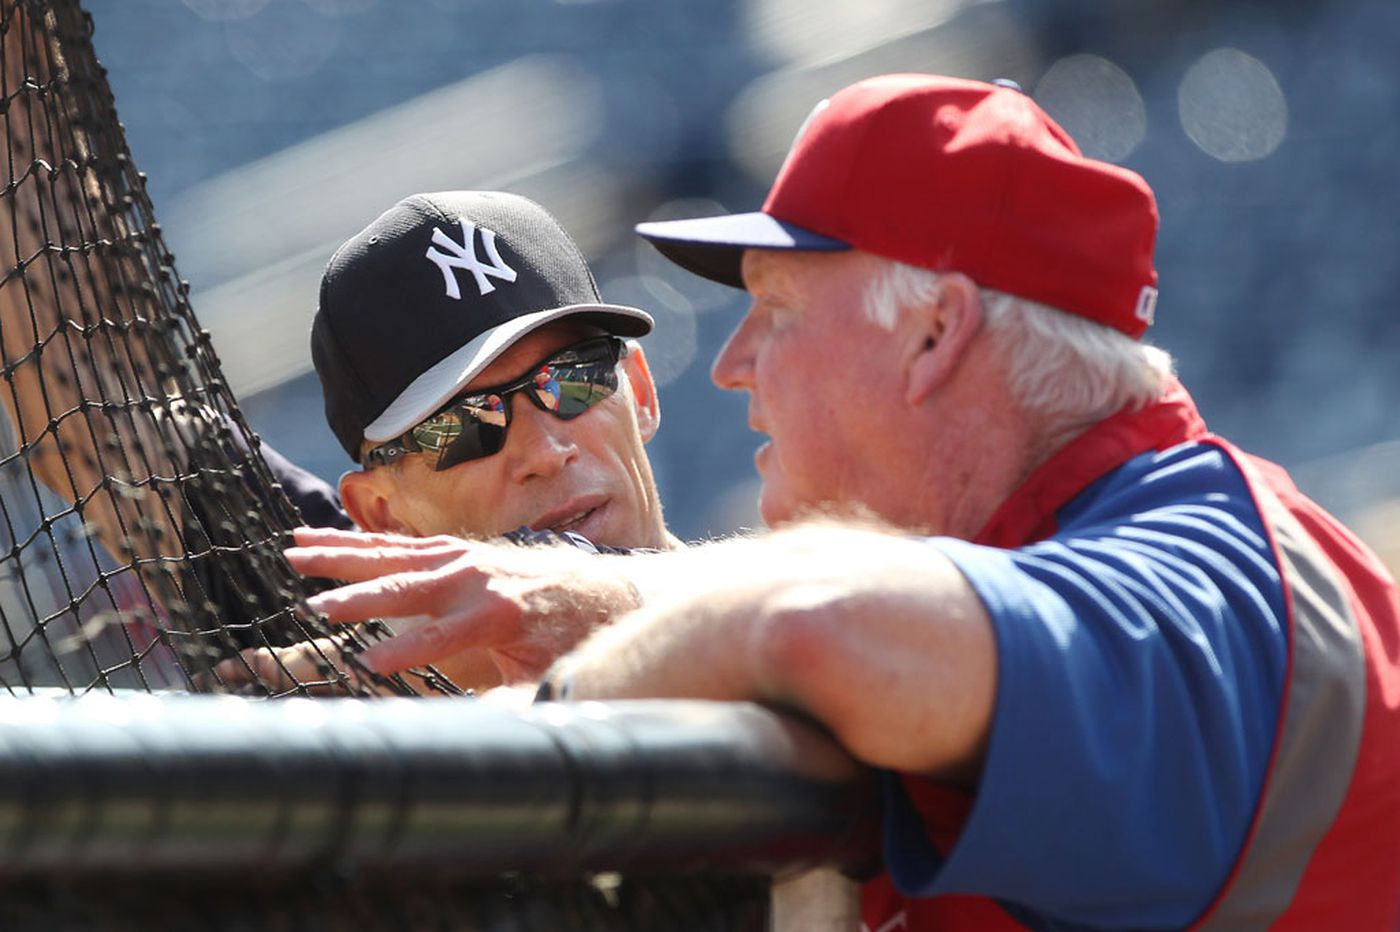 Joe Girardi is 'leading candidate' to be new Phillies manager, source says